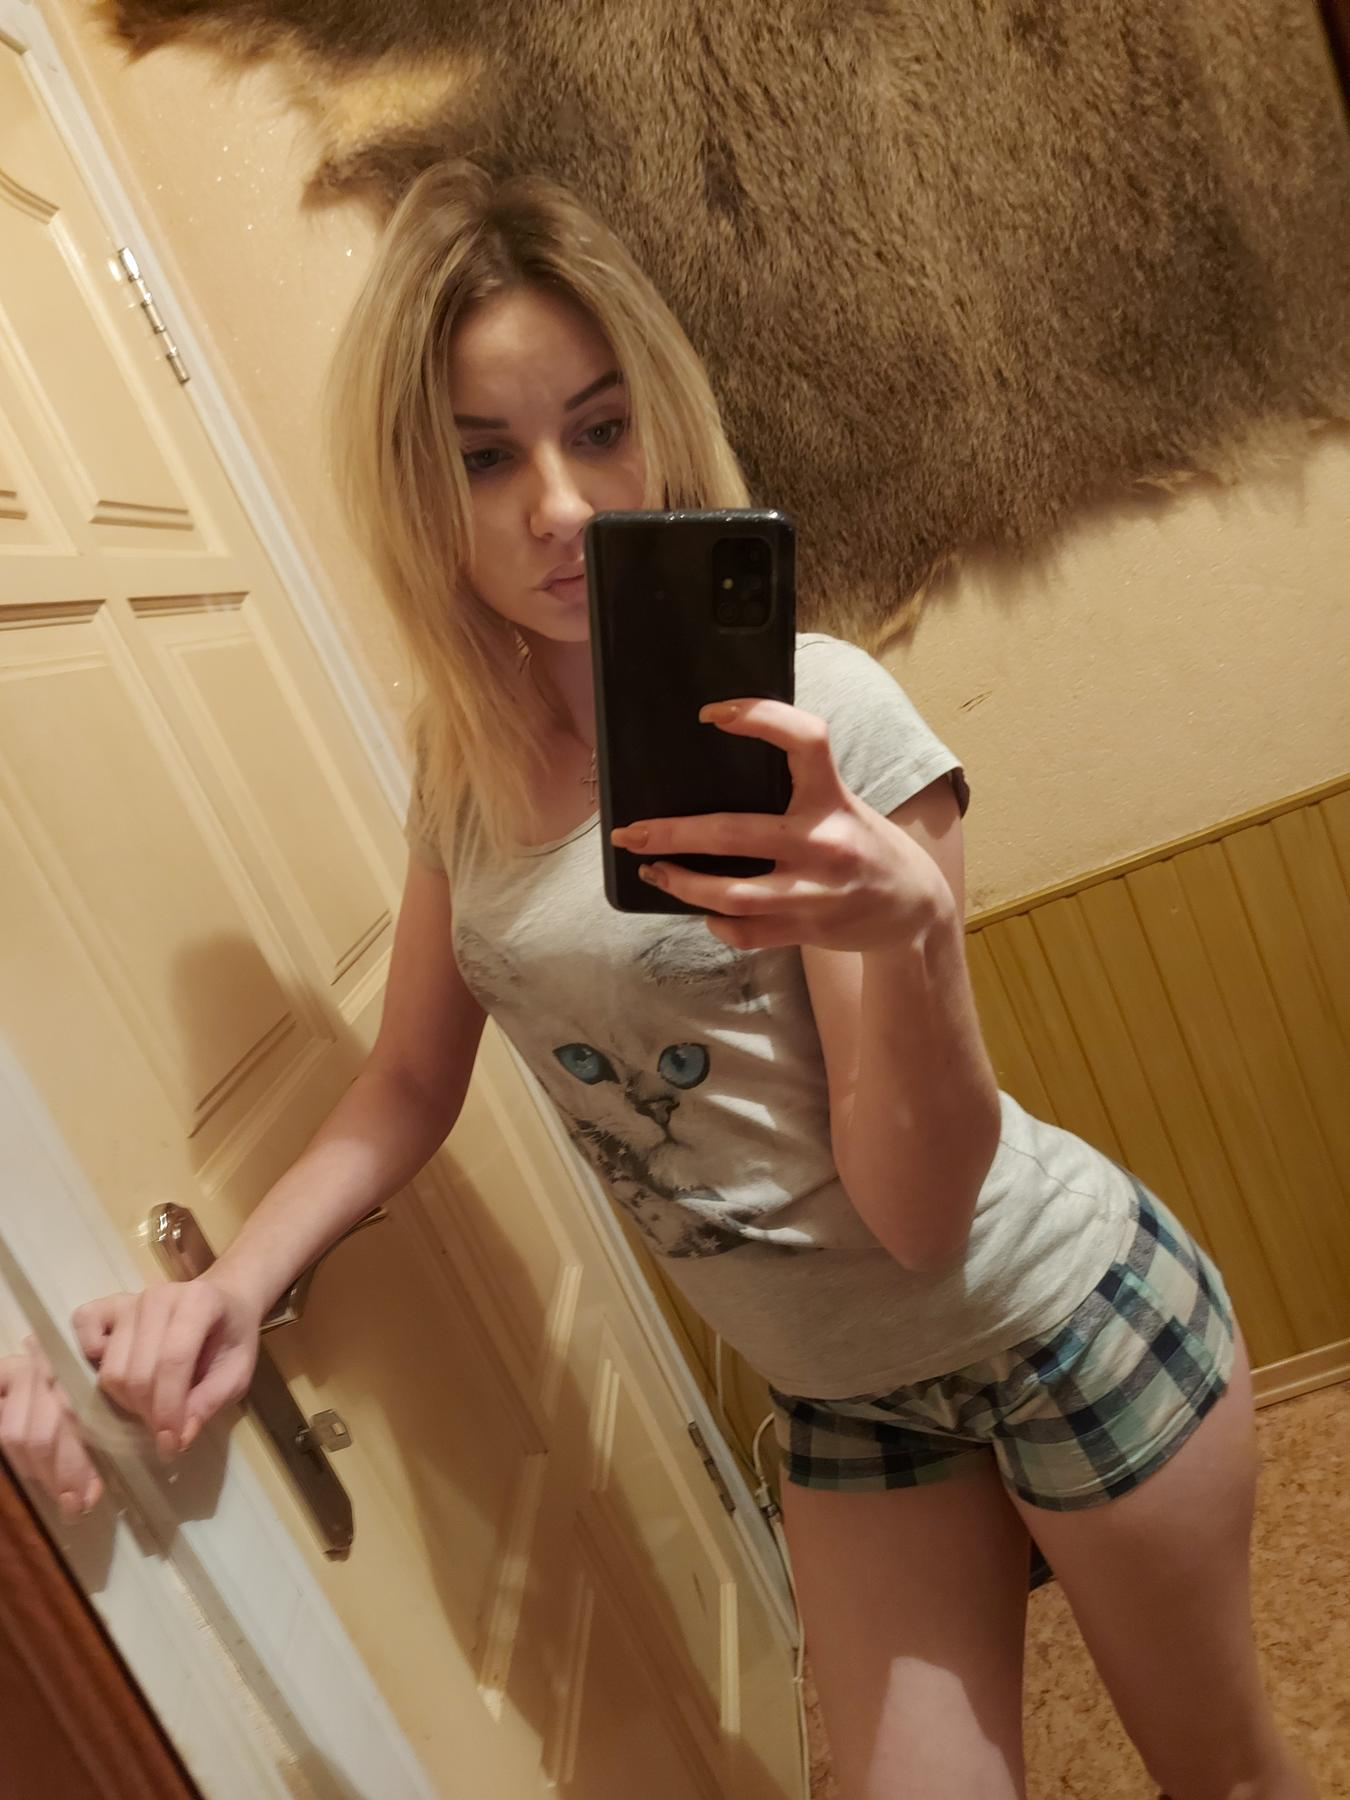 Picture with tags: Real, Interesting, Girl